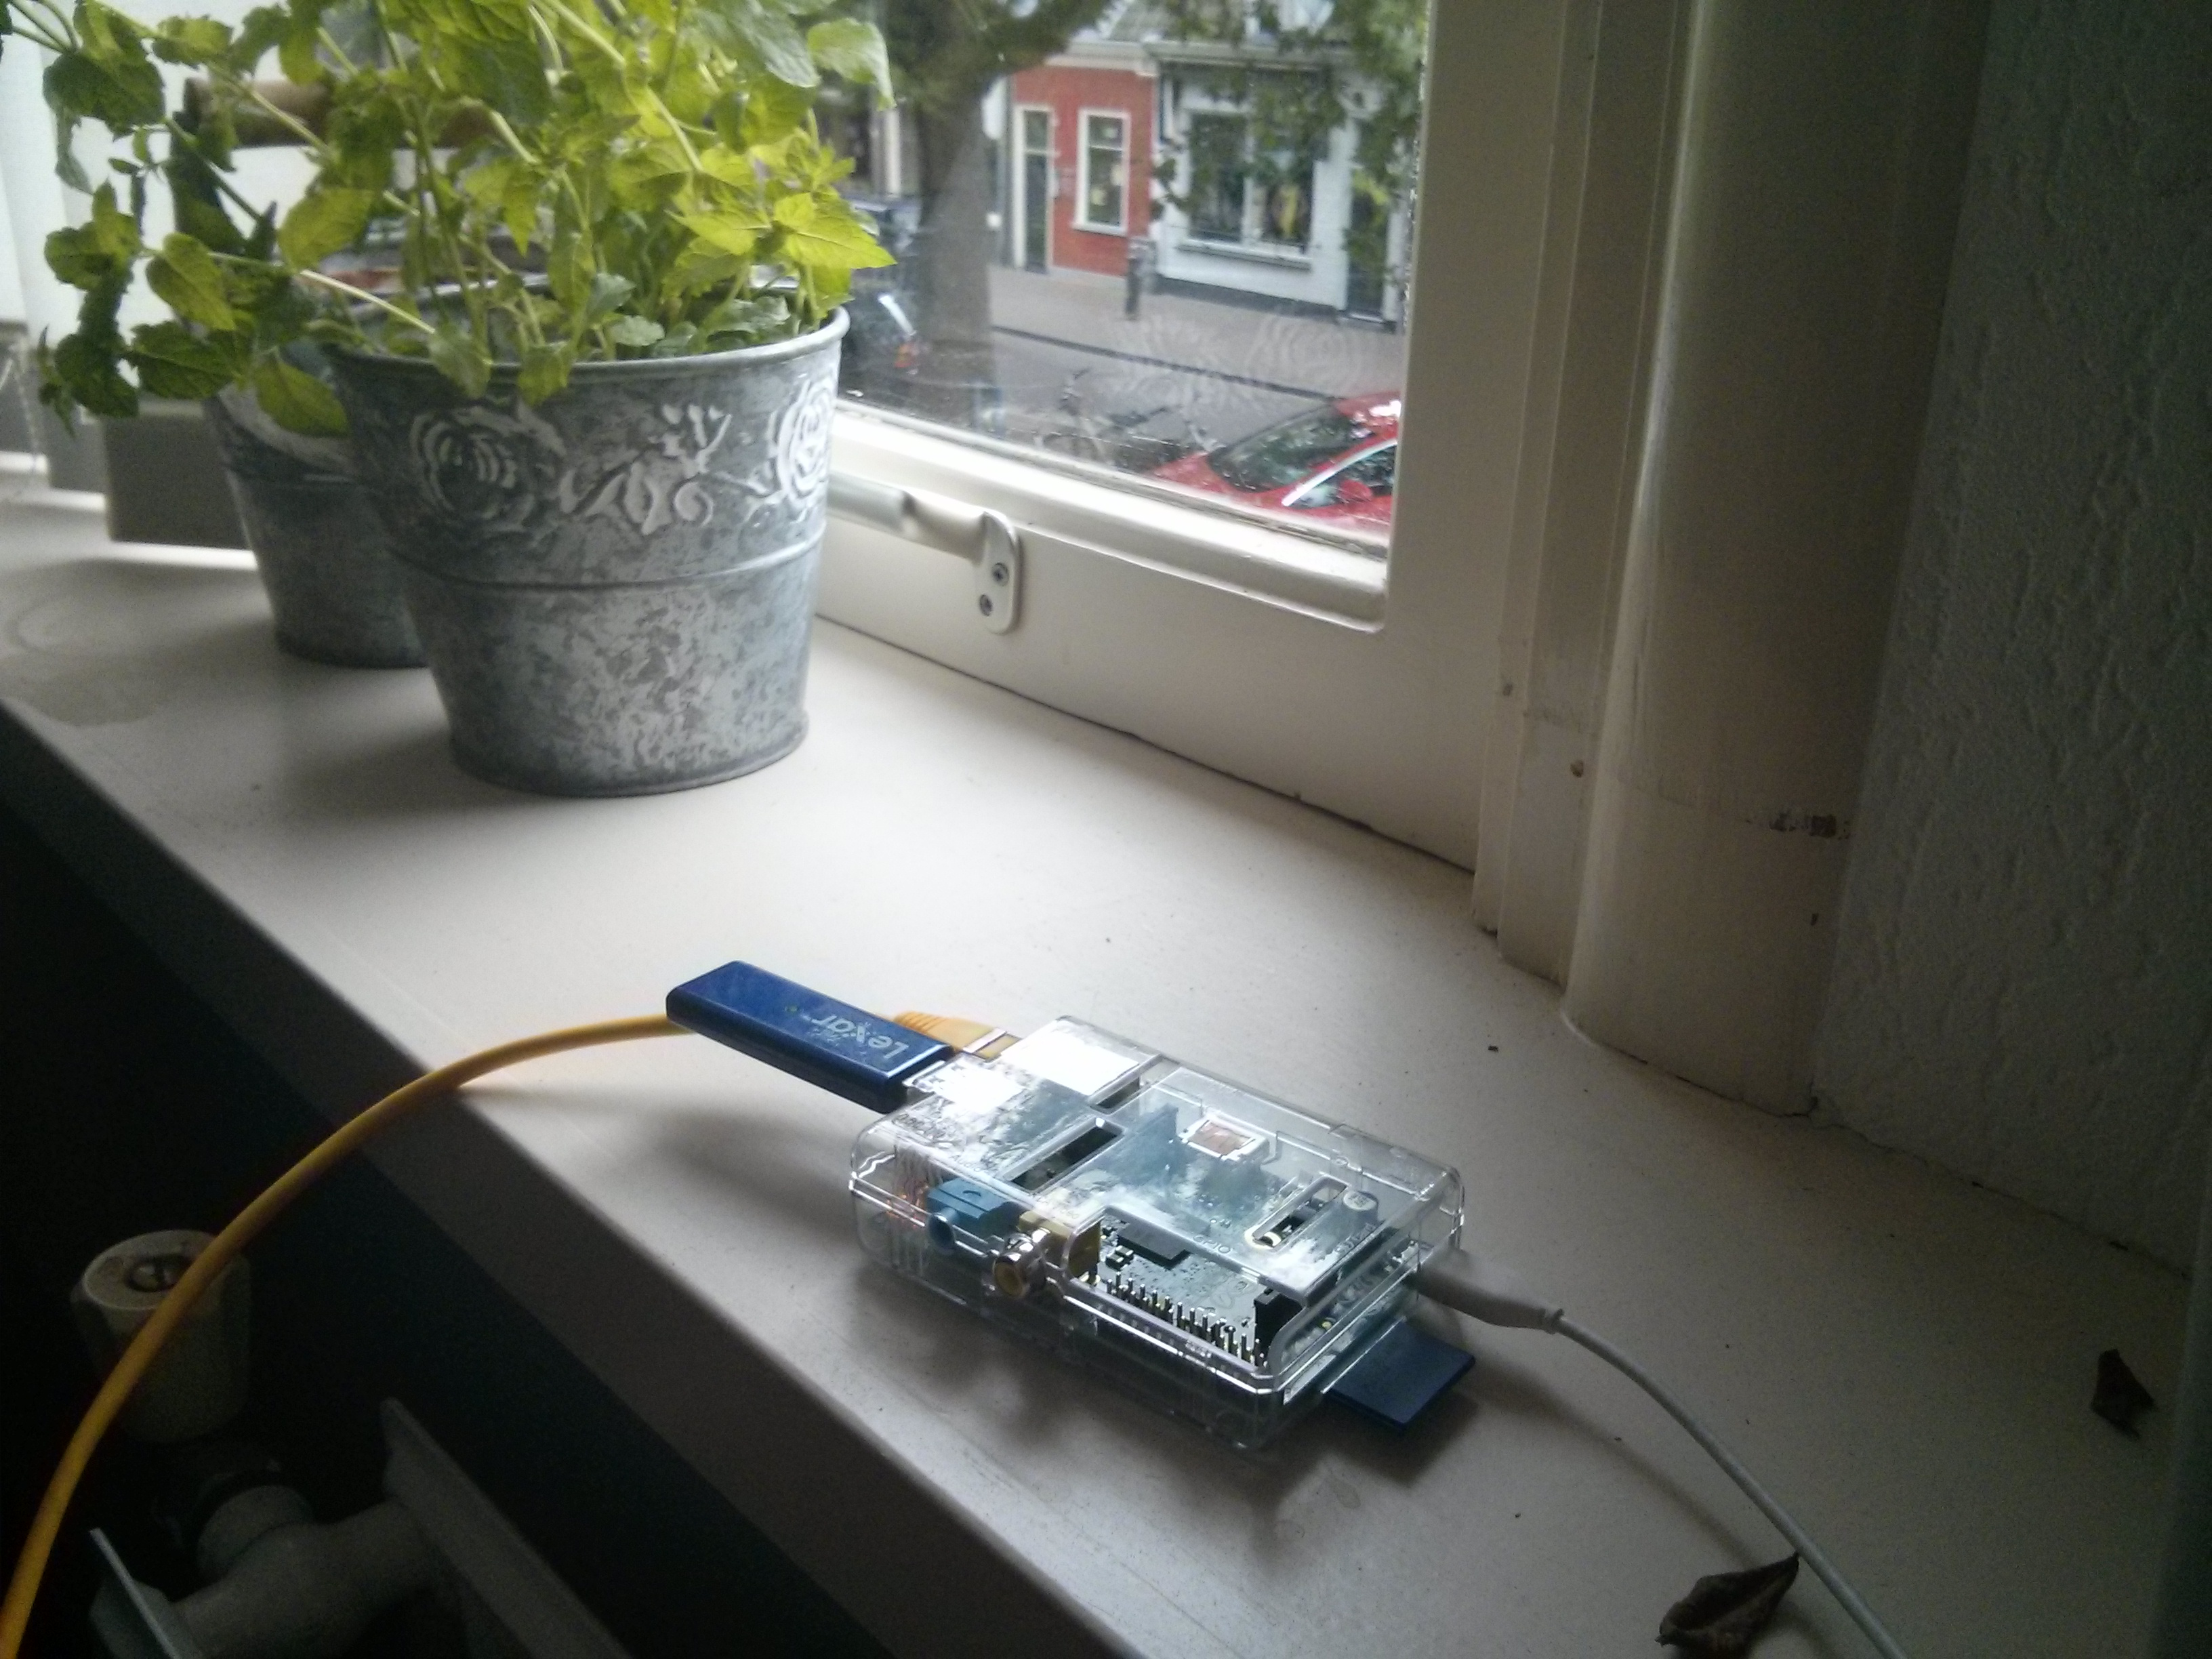 The mint plant in the background goes hand in hand with the RPi's green nature at only 3.5W input!